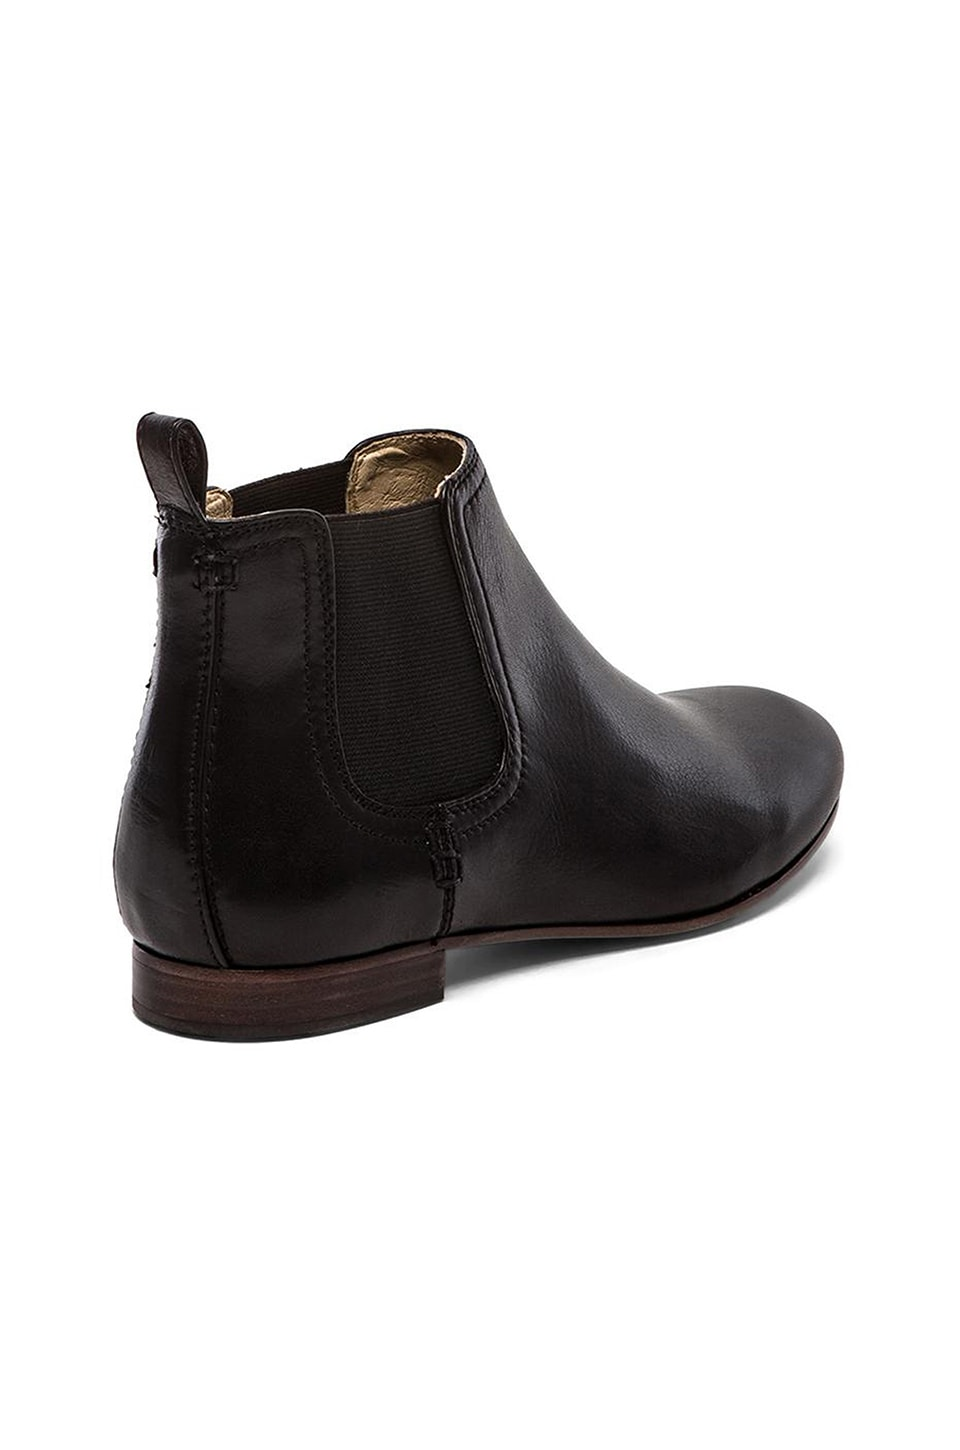 Frye Jillian Chelsea Bootie in Black